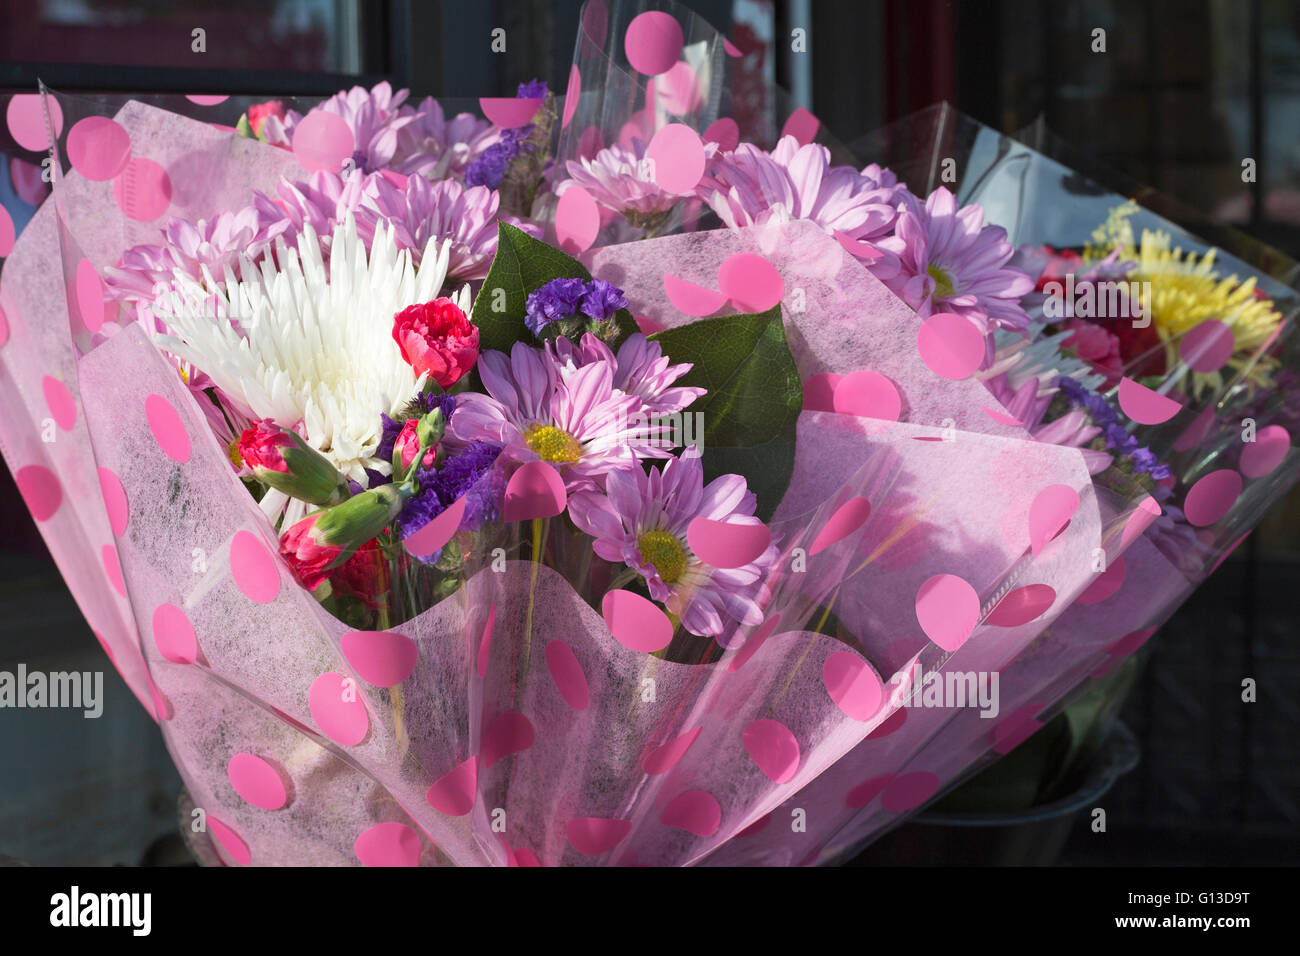 Bouquet of fresh flowers for sale - Stock Image